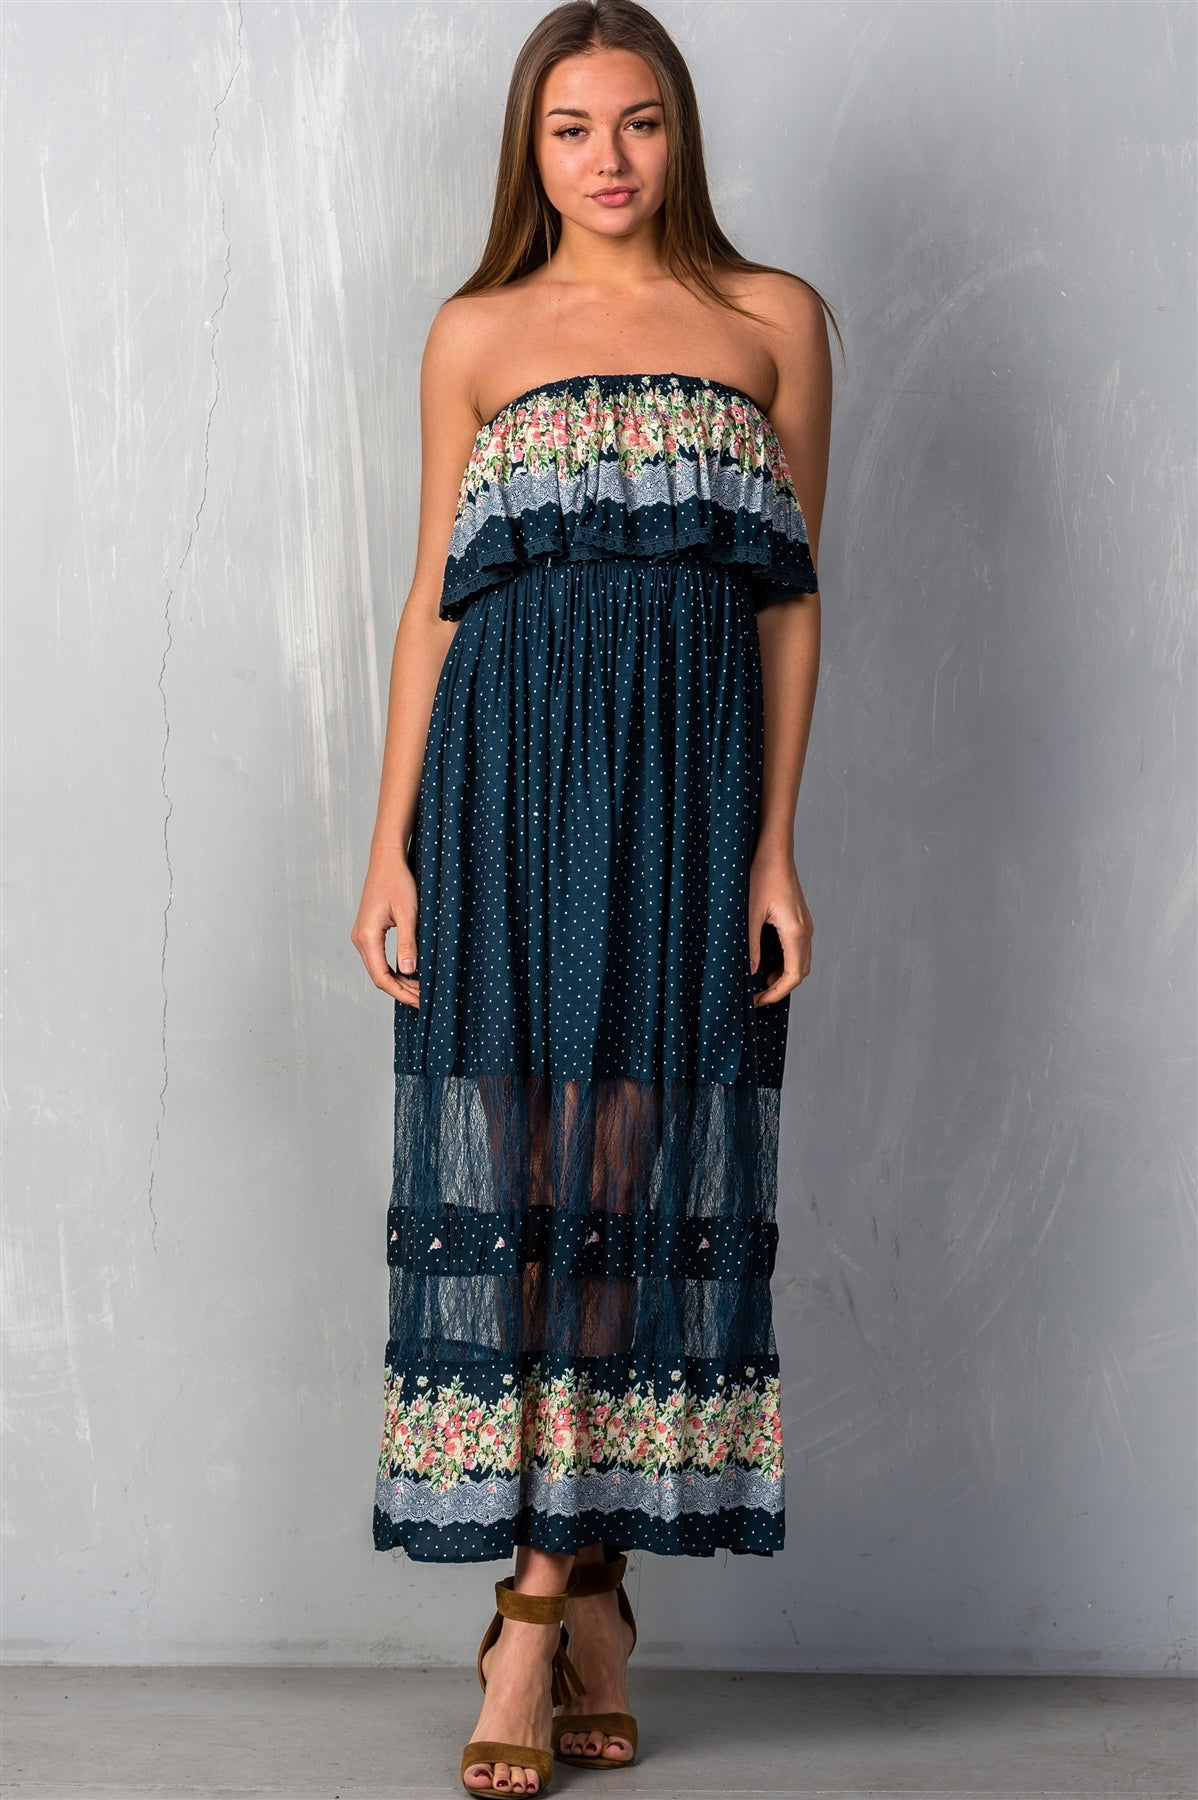 Ladies fashion polka dot w/ floral print navy flounce maxi boho dress